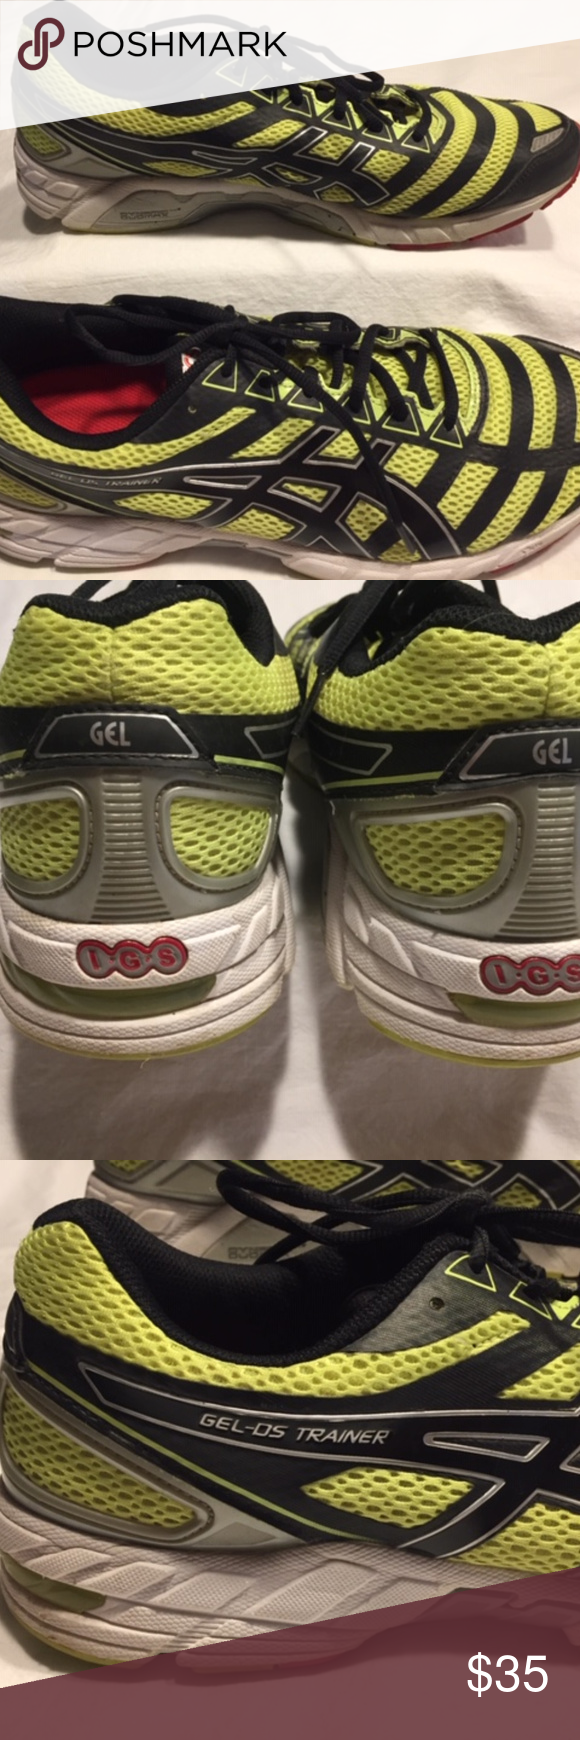 Gel DS Trainer Running Shoes